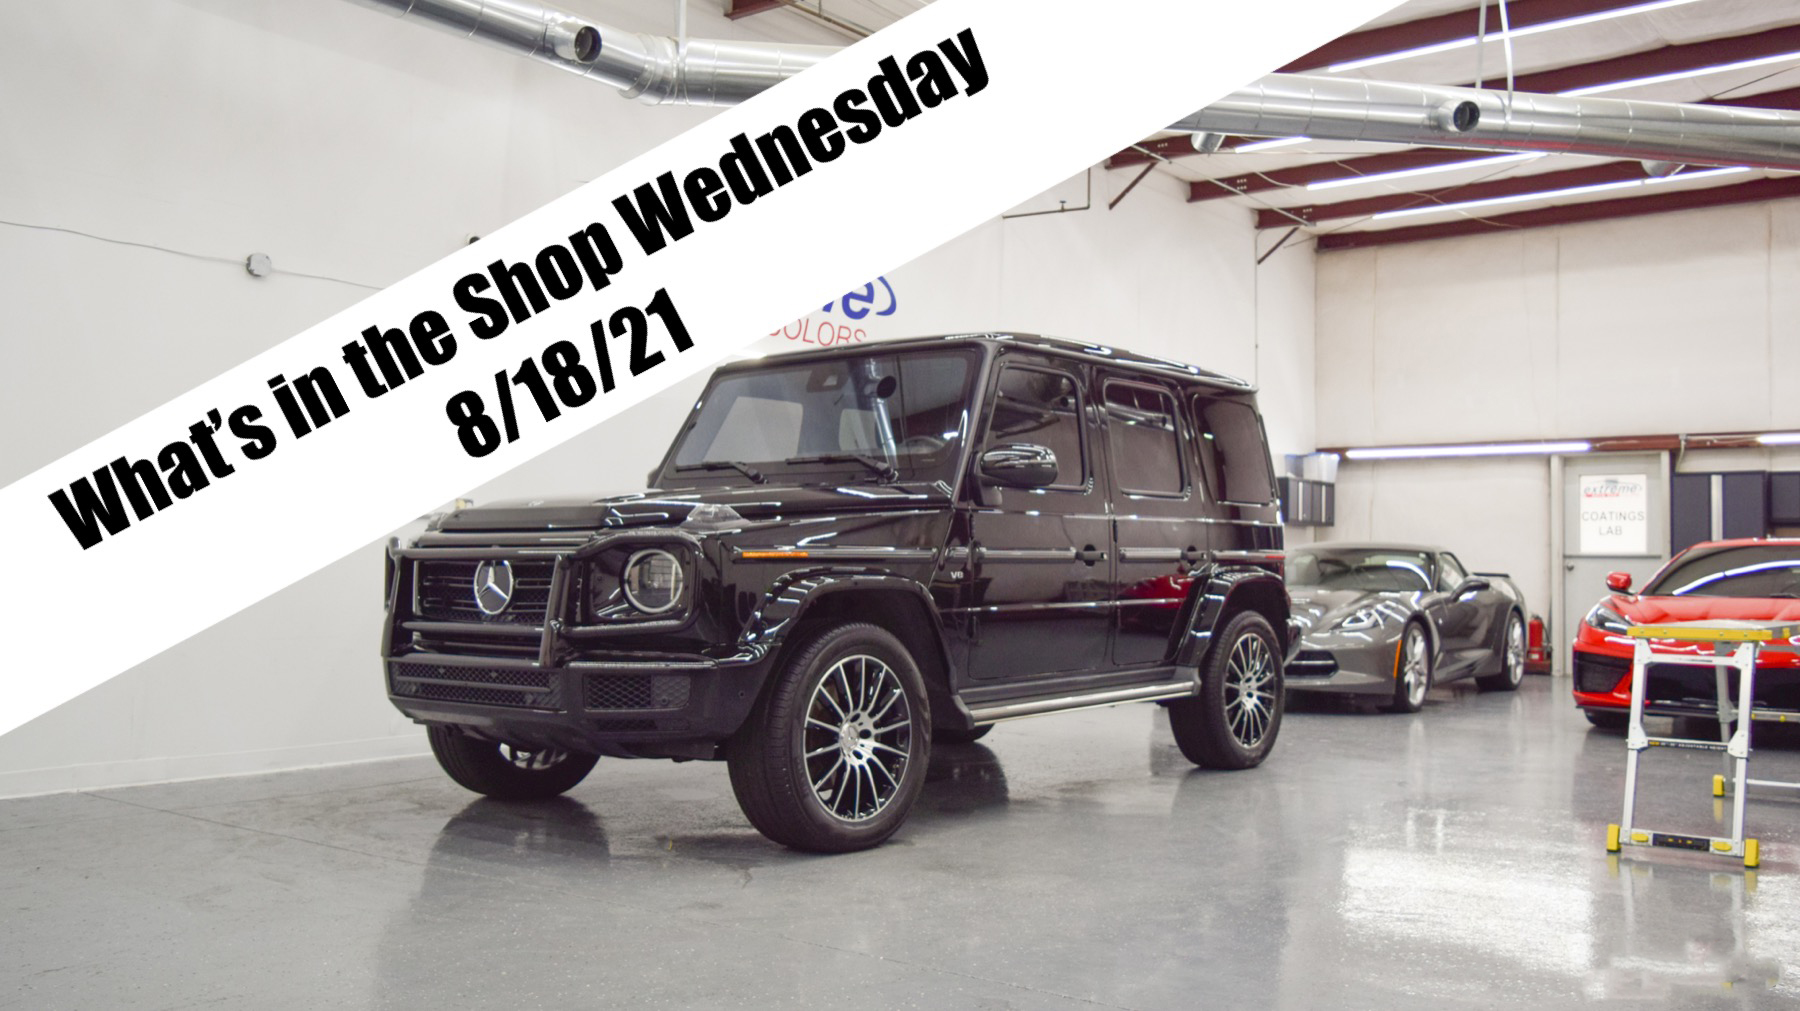 What's in the Shop Wednesday 8/18/21